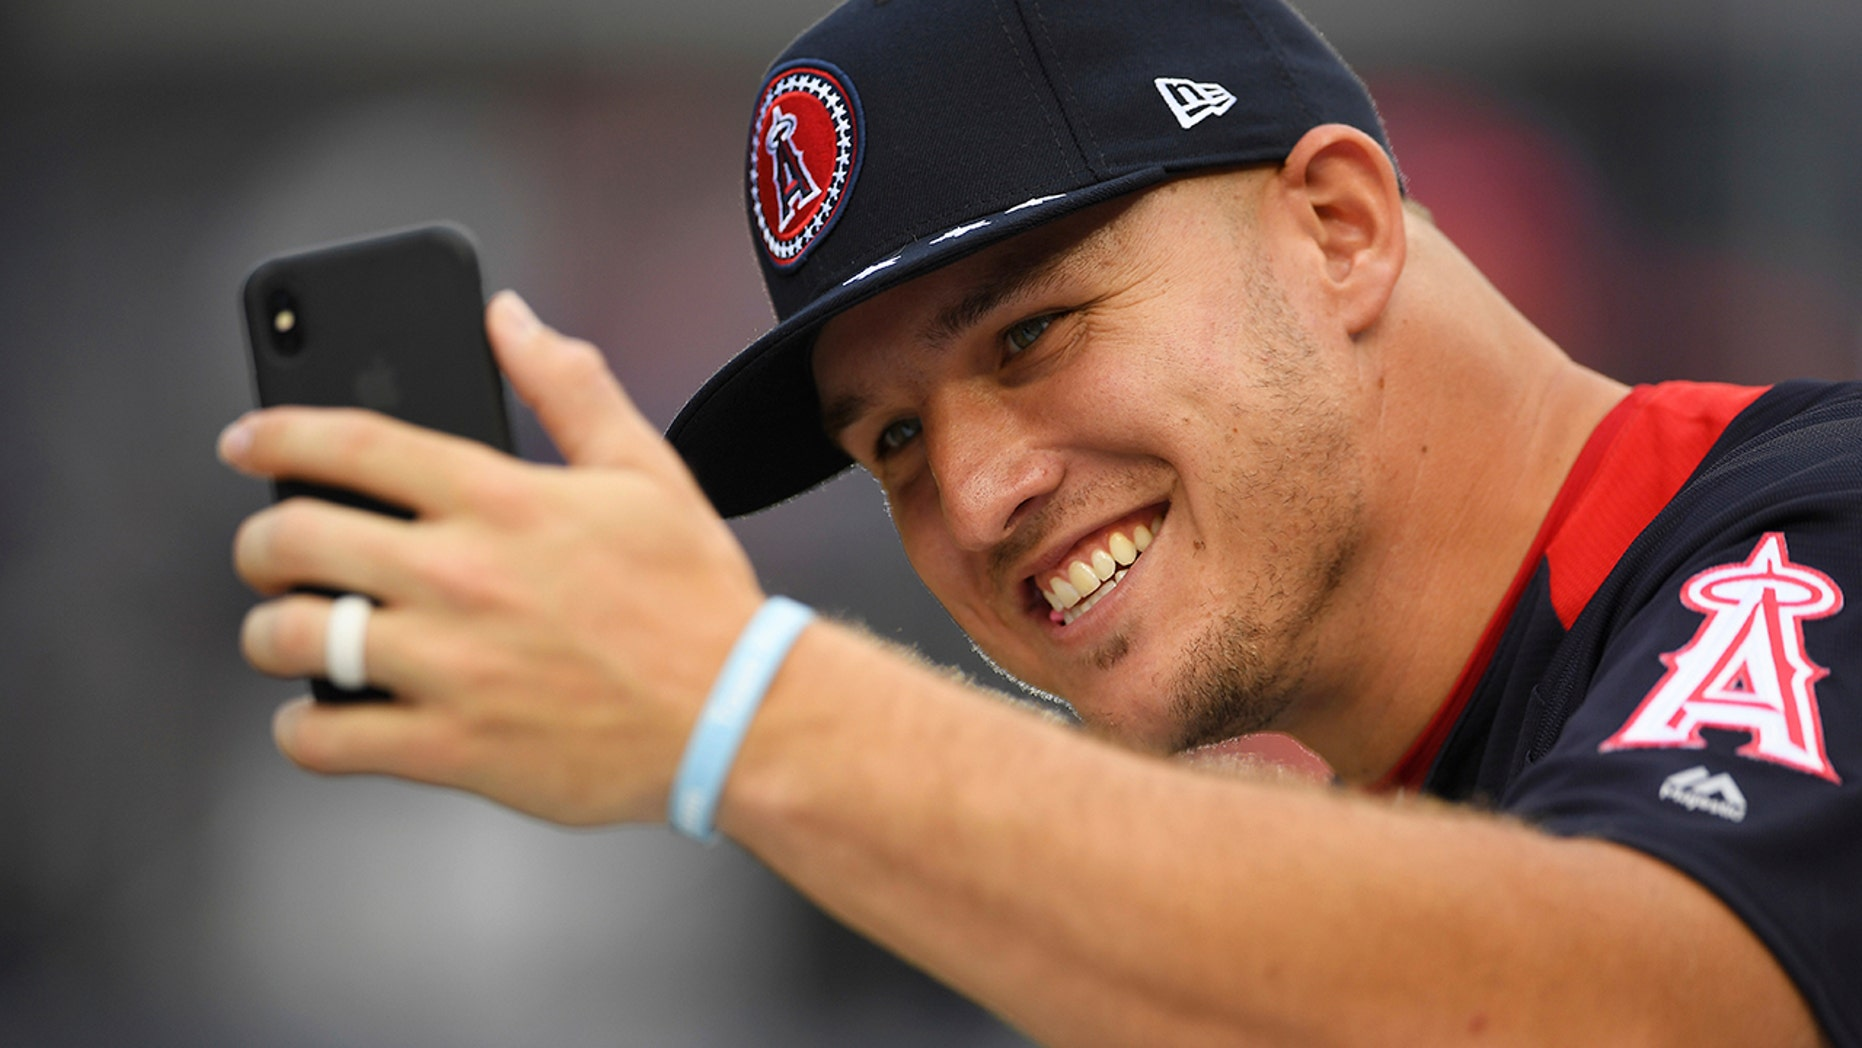 Los Angeles Angels outfielder Mike Trout takes a photo on the field ahead of the Home Run derby during the All-Star Game festivities.